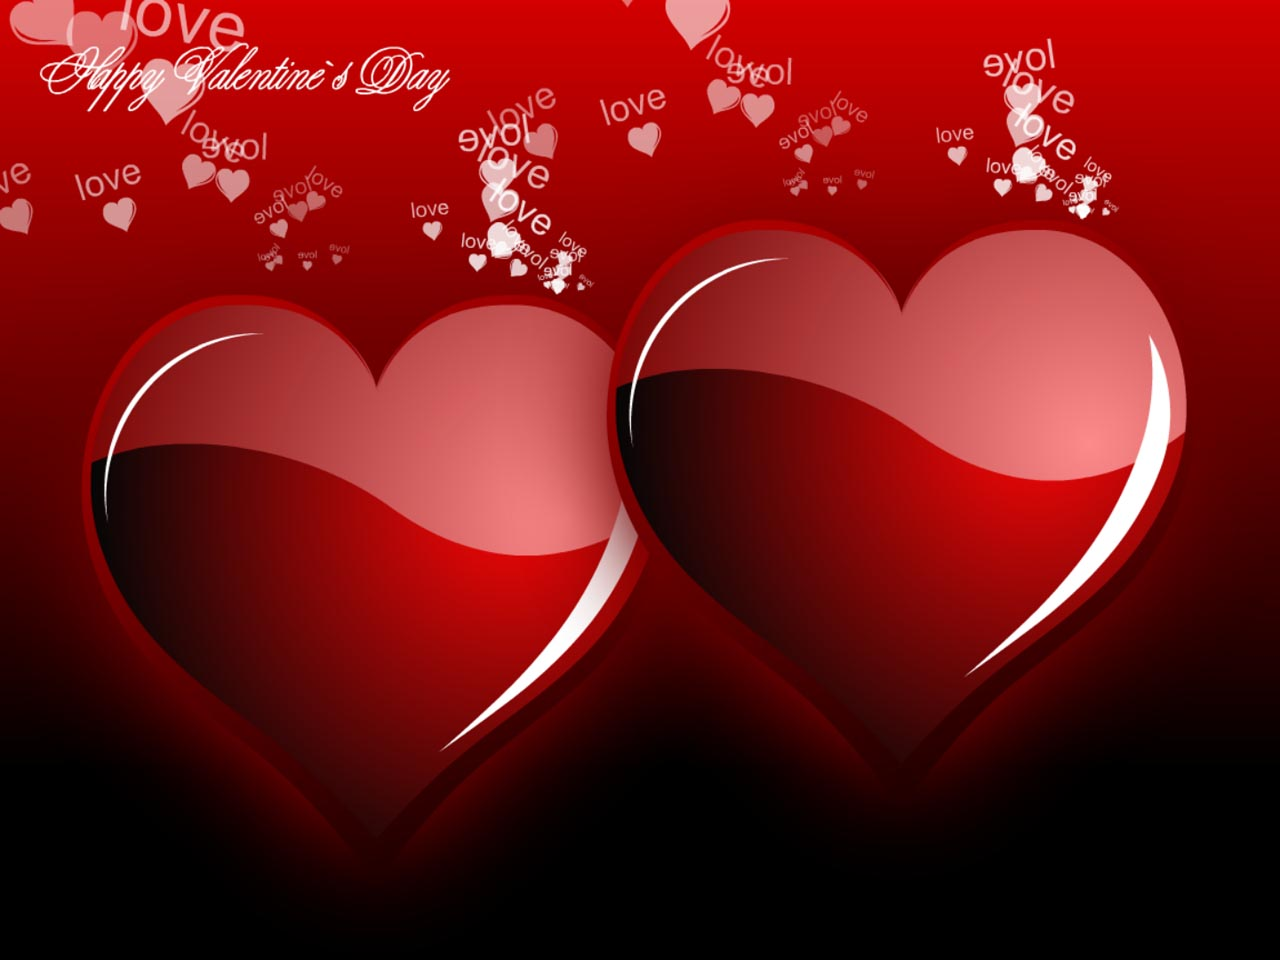 two valentines windows 10 valentines day screensaver - Valentines Pictures Free